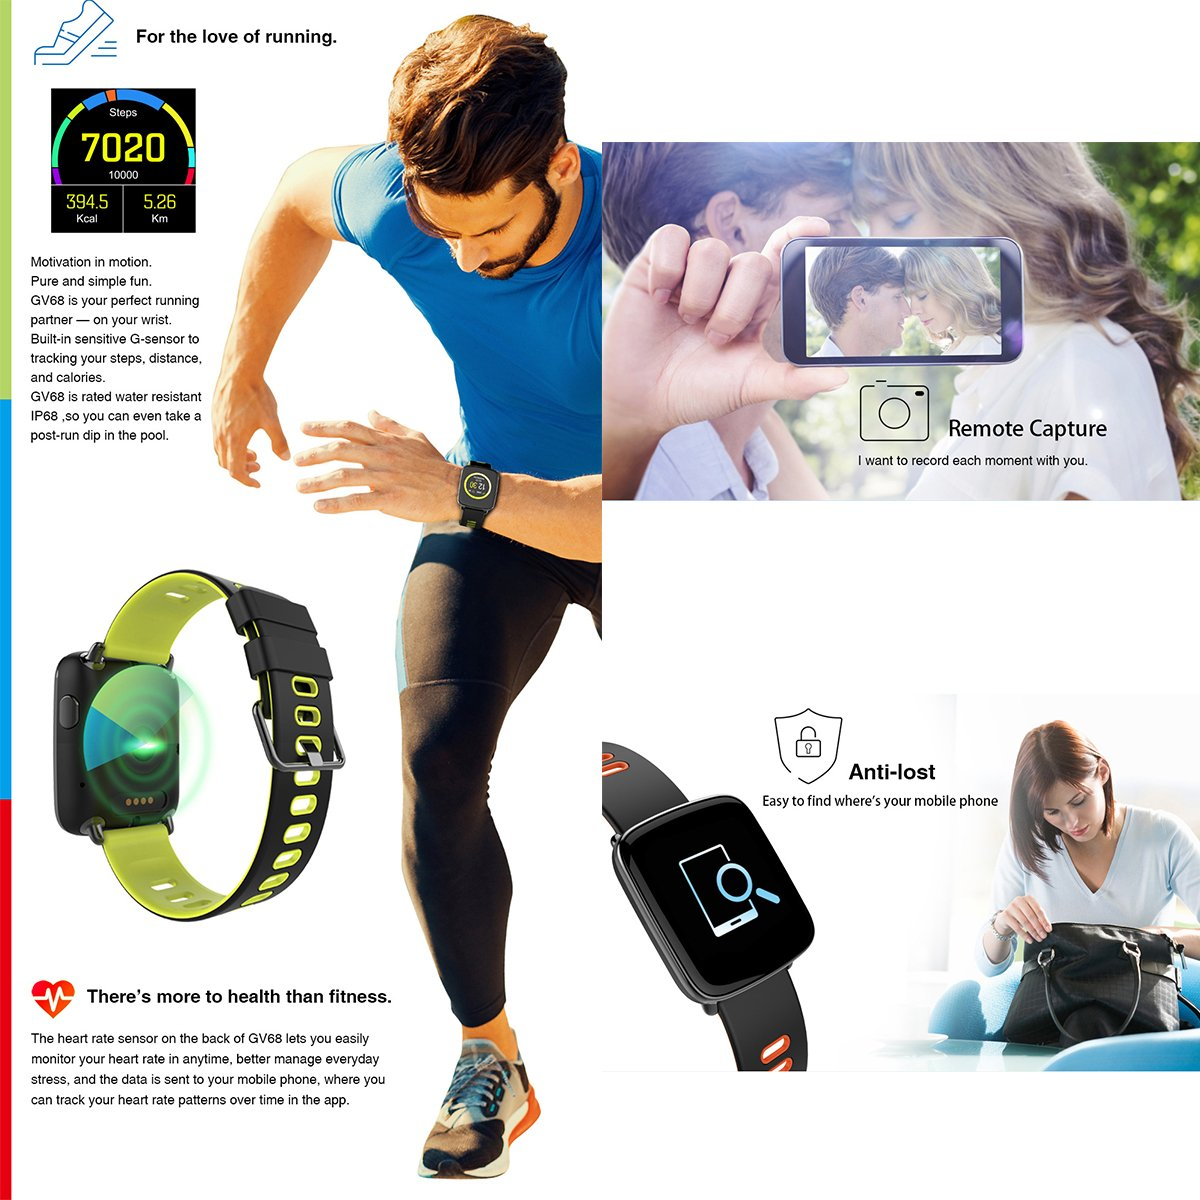 Oak Waterproof Fitness Smart Watch with Notification Synchronization, Heart Rate Monitor, Sleep Monitor, Pedometer for iOS and Android Smartphones ...